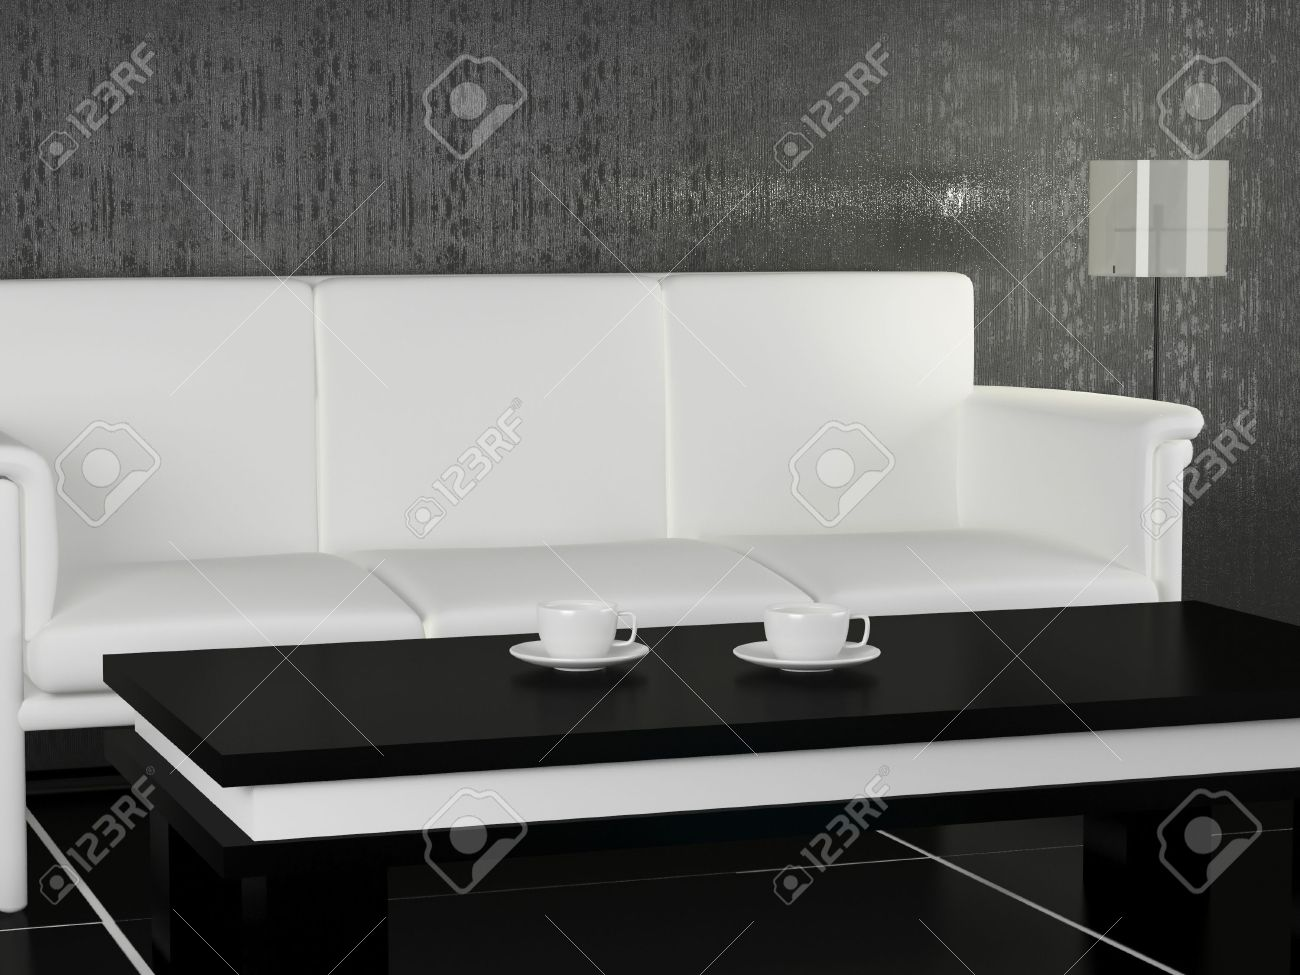 White Sofa And Coffee Table In The Modern Living Room For Coffee